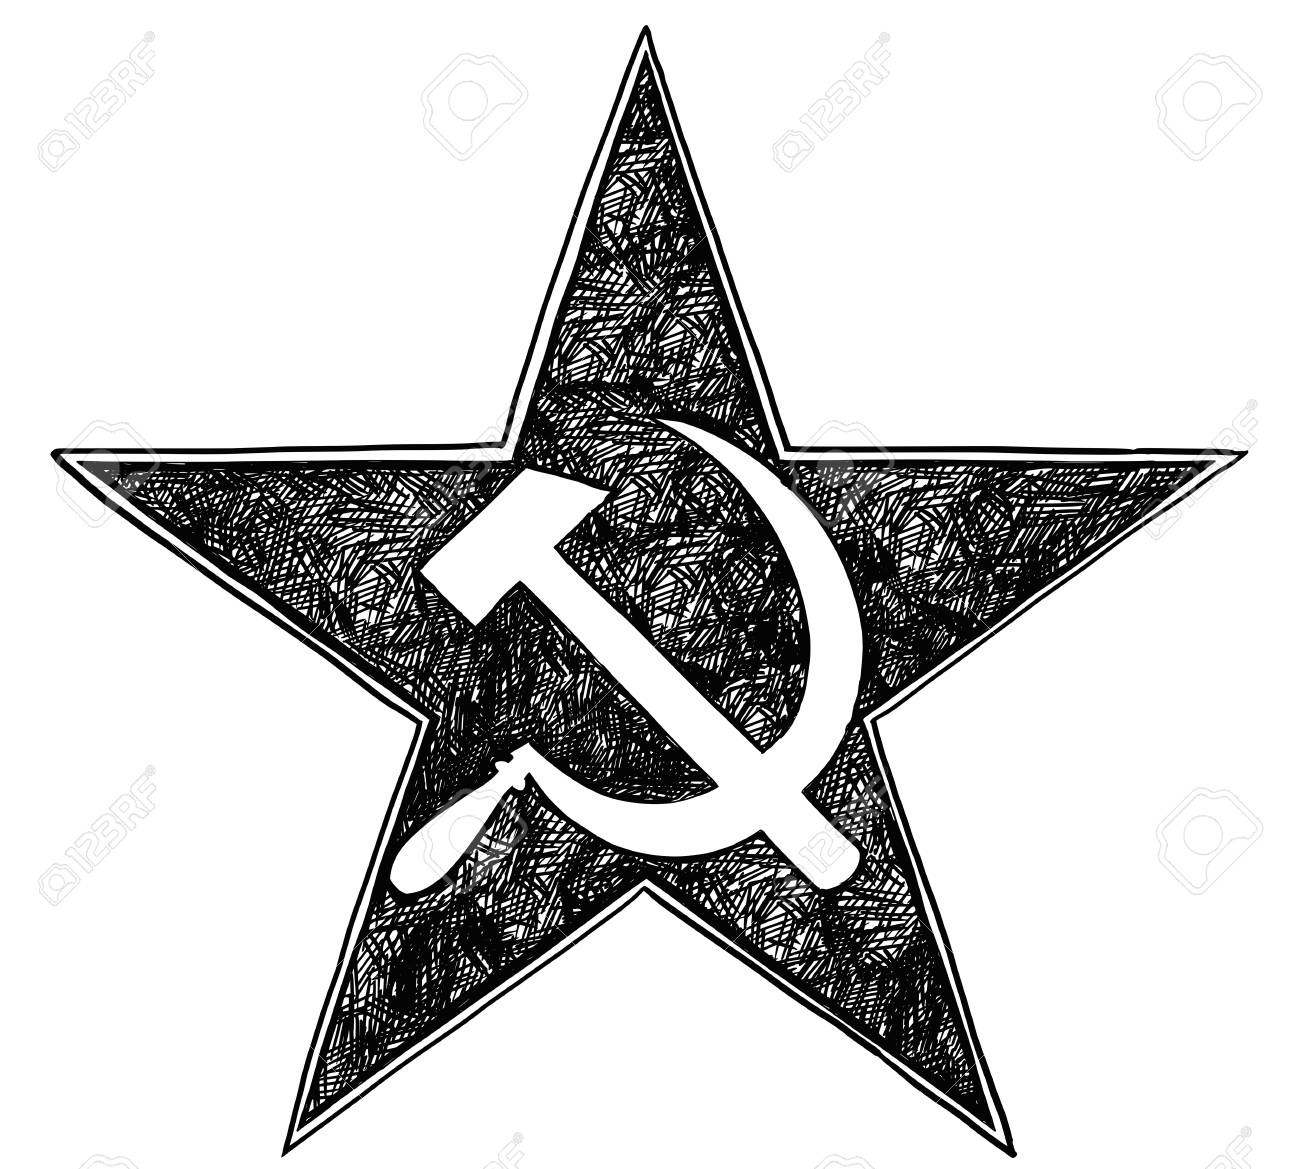 Hammer and sickle inside star symbol of communism and soviet hammer and sickle inside star symbol of communism and soviet union stock vector 80906944 biocorpaavc Gallery